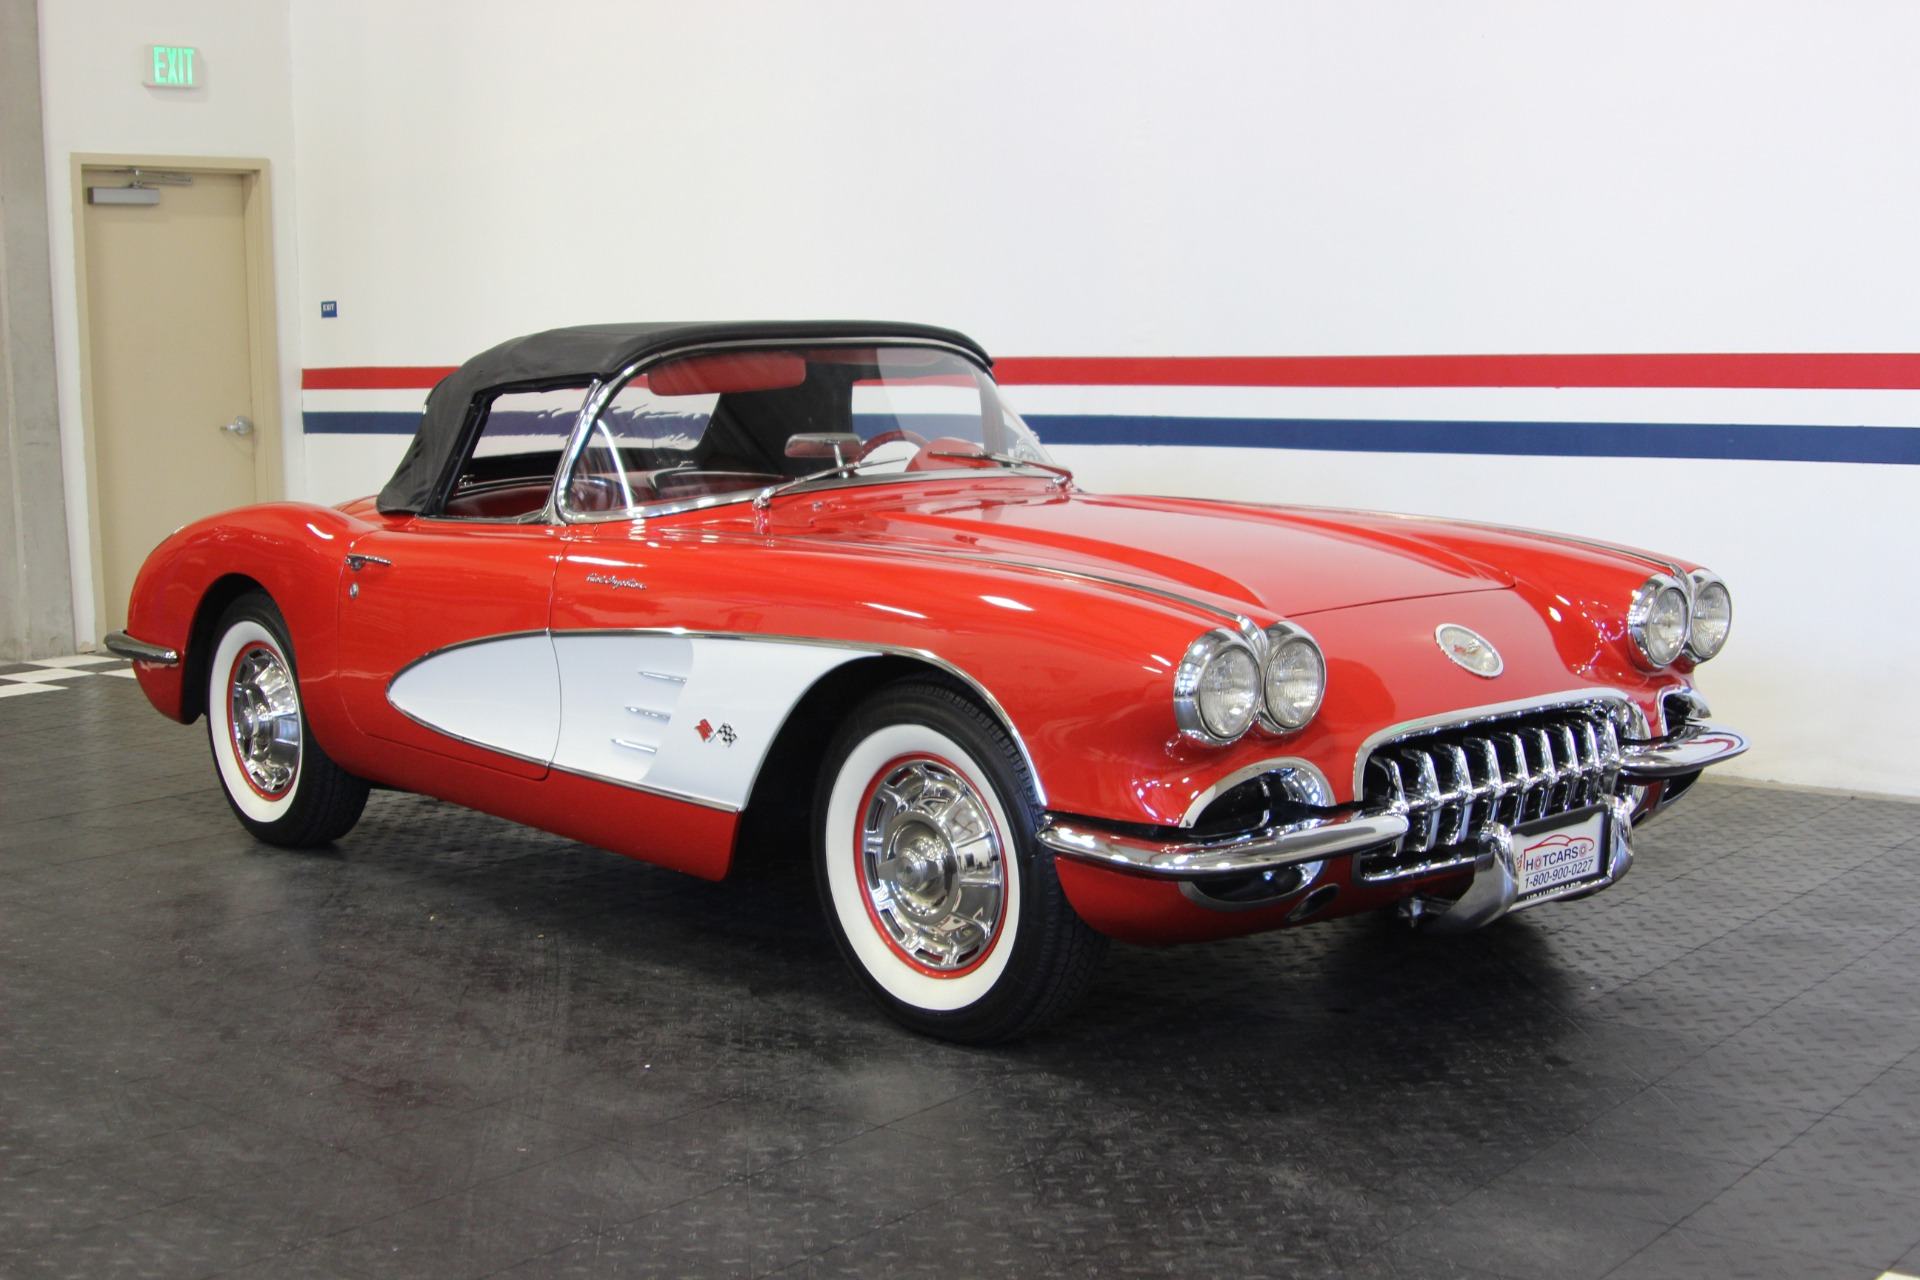 Used-1960-Chevrolet-Corvette-Fuel-Injected